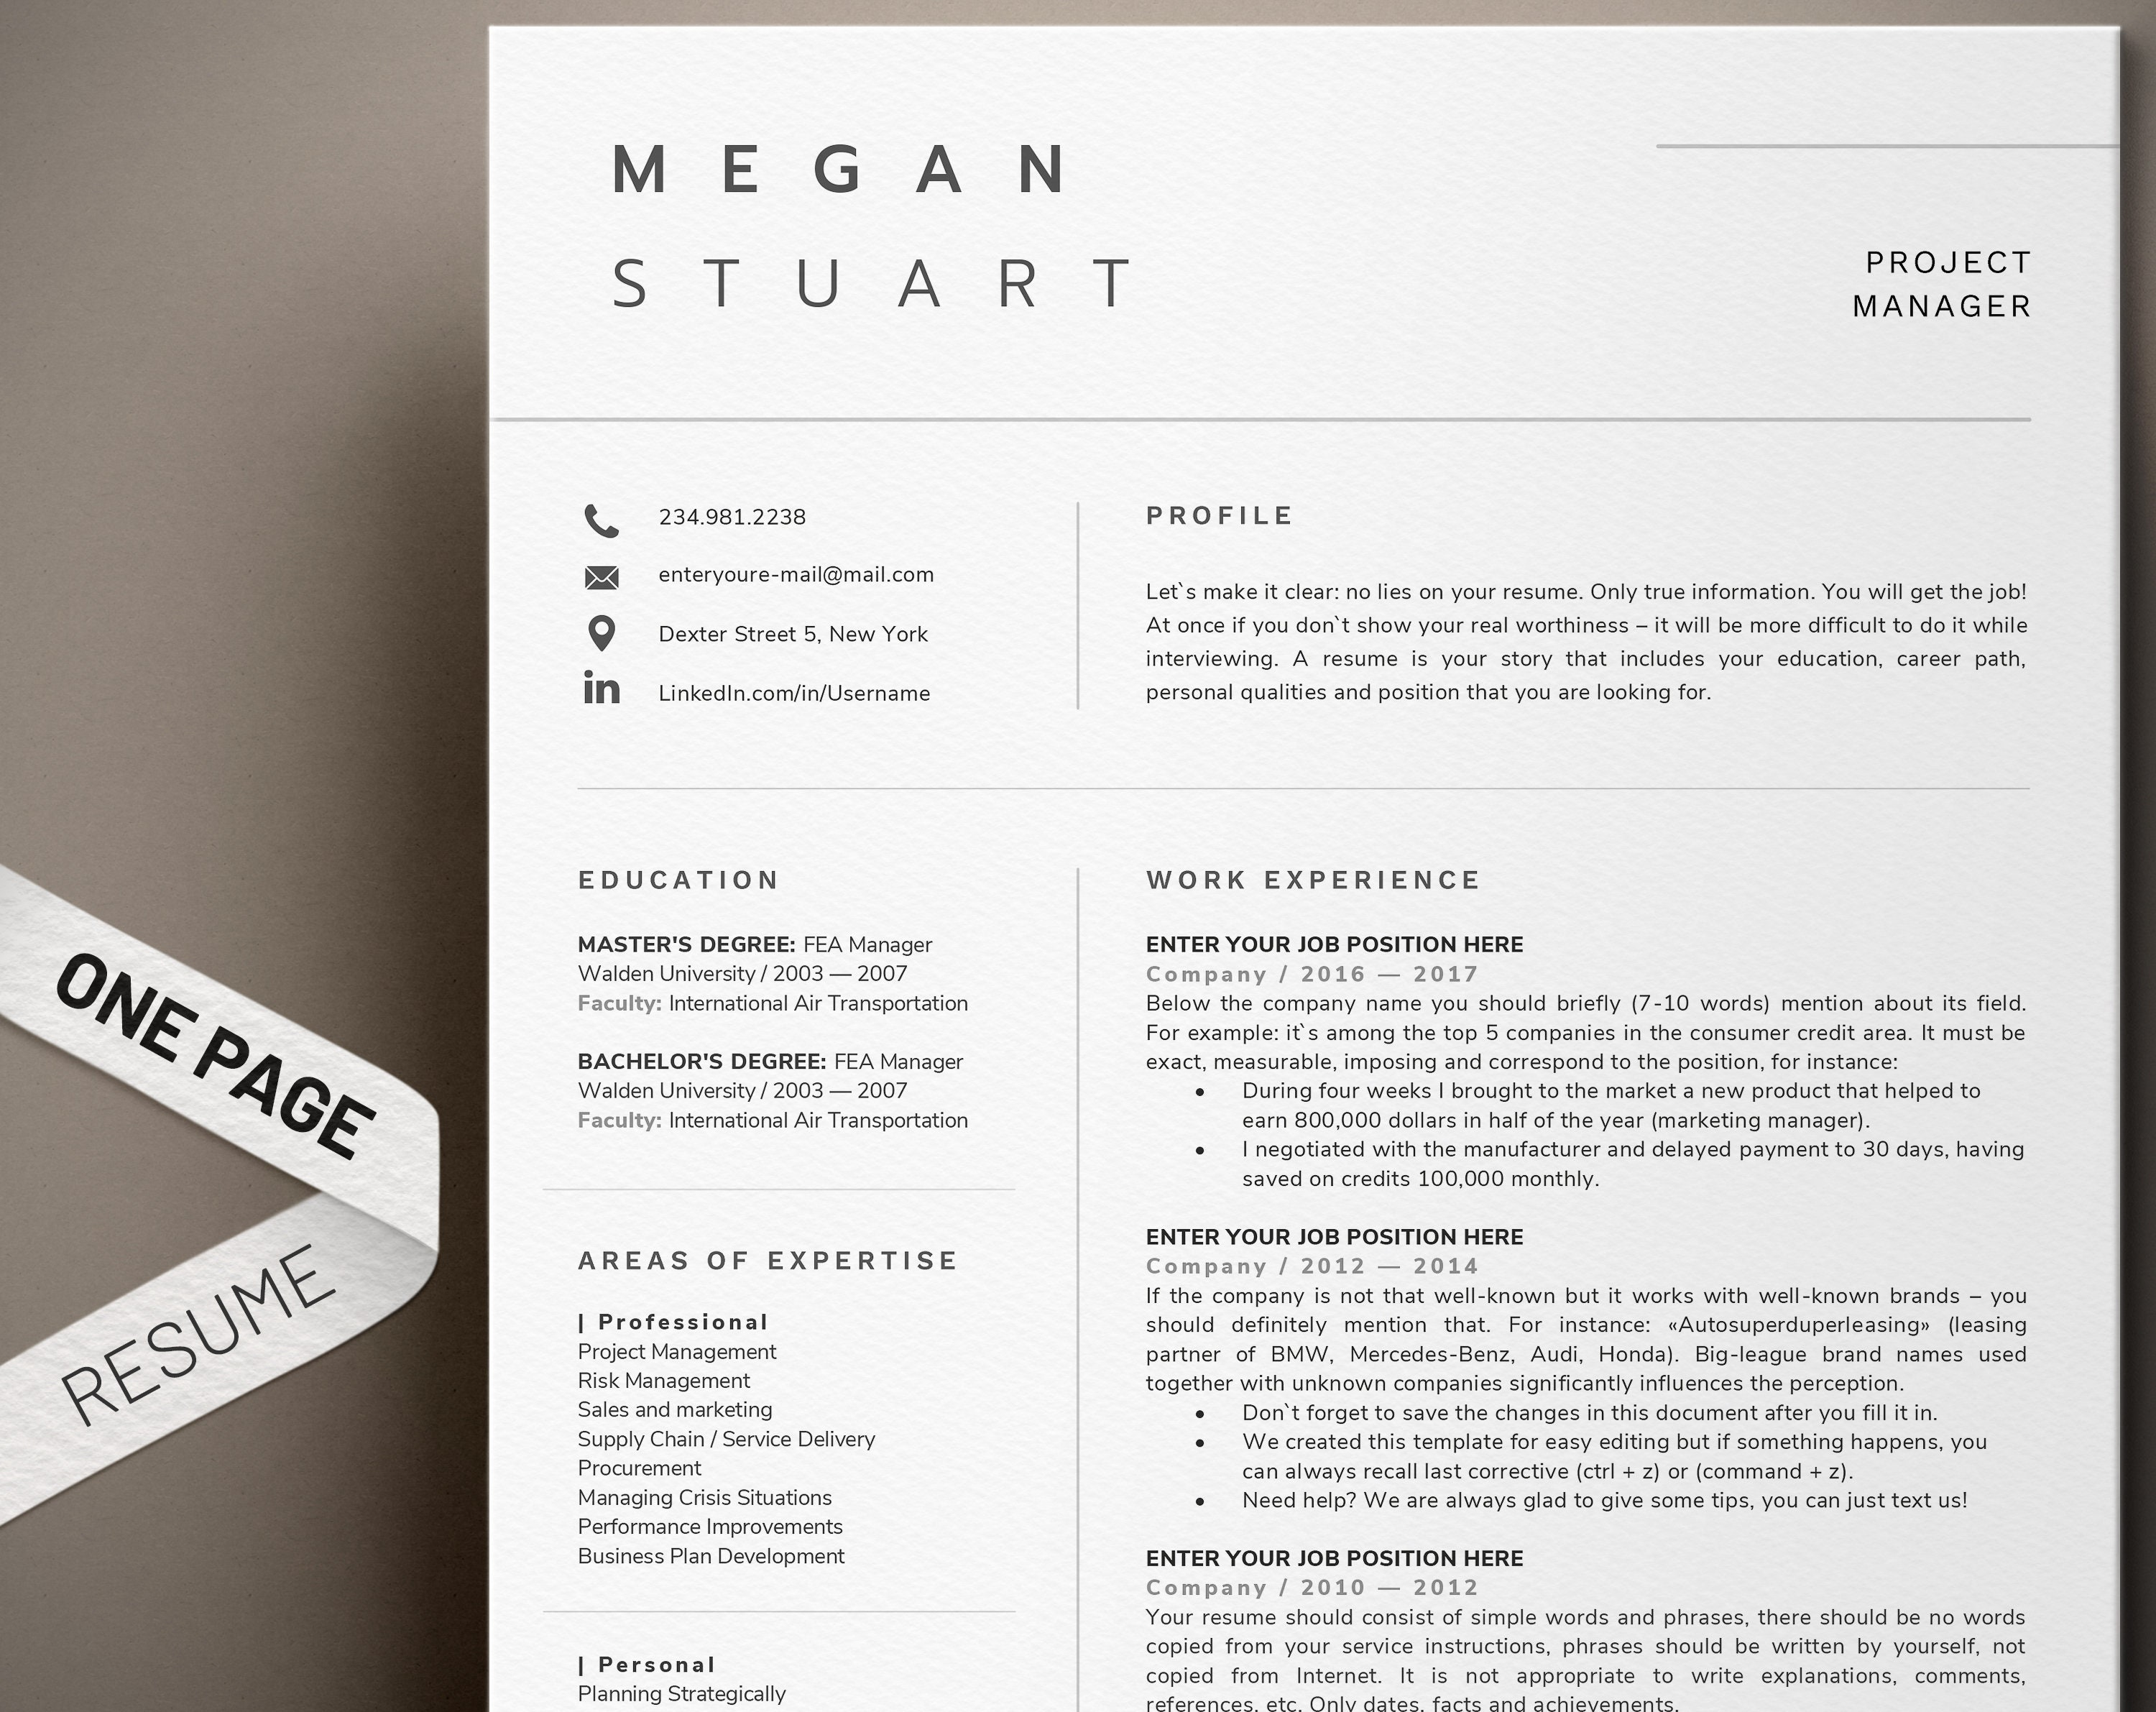 Resume template Professional resume 1 page resume Modern | Etsy